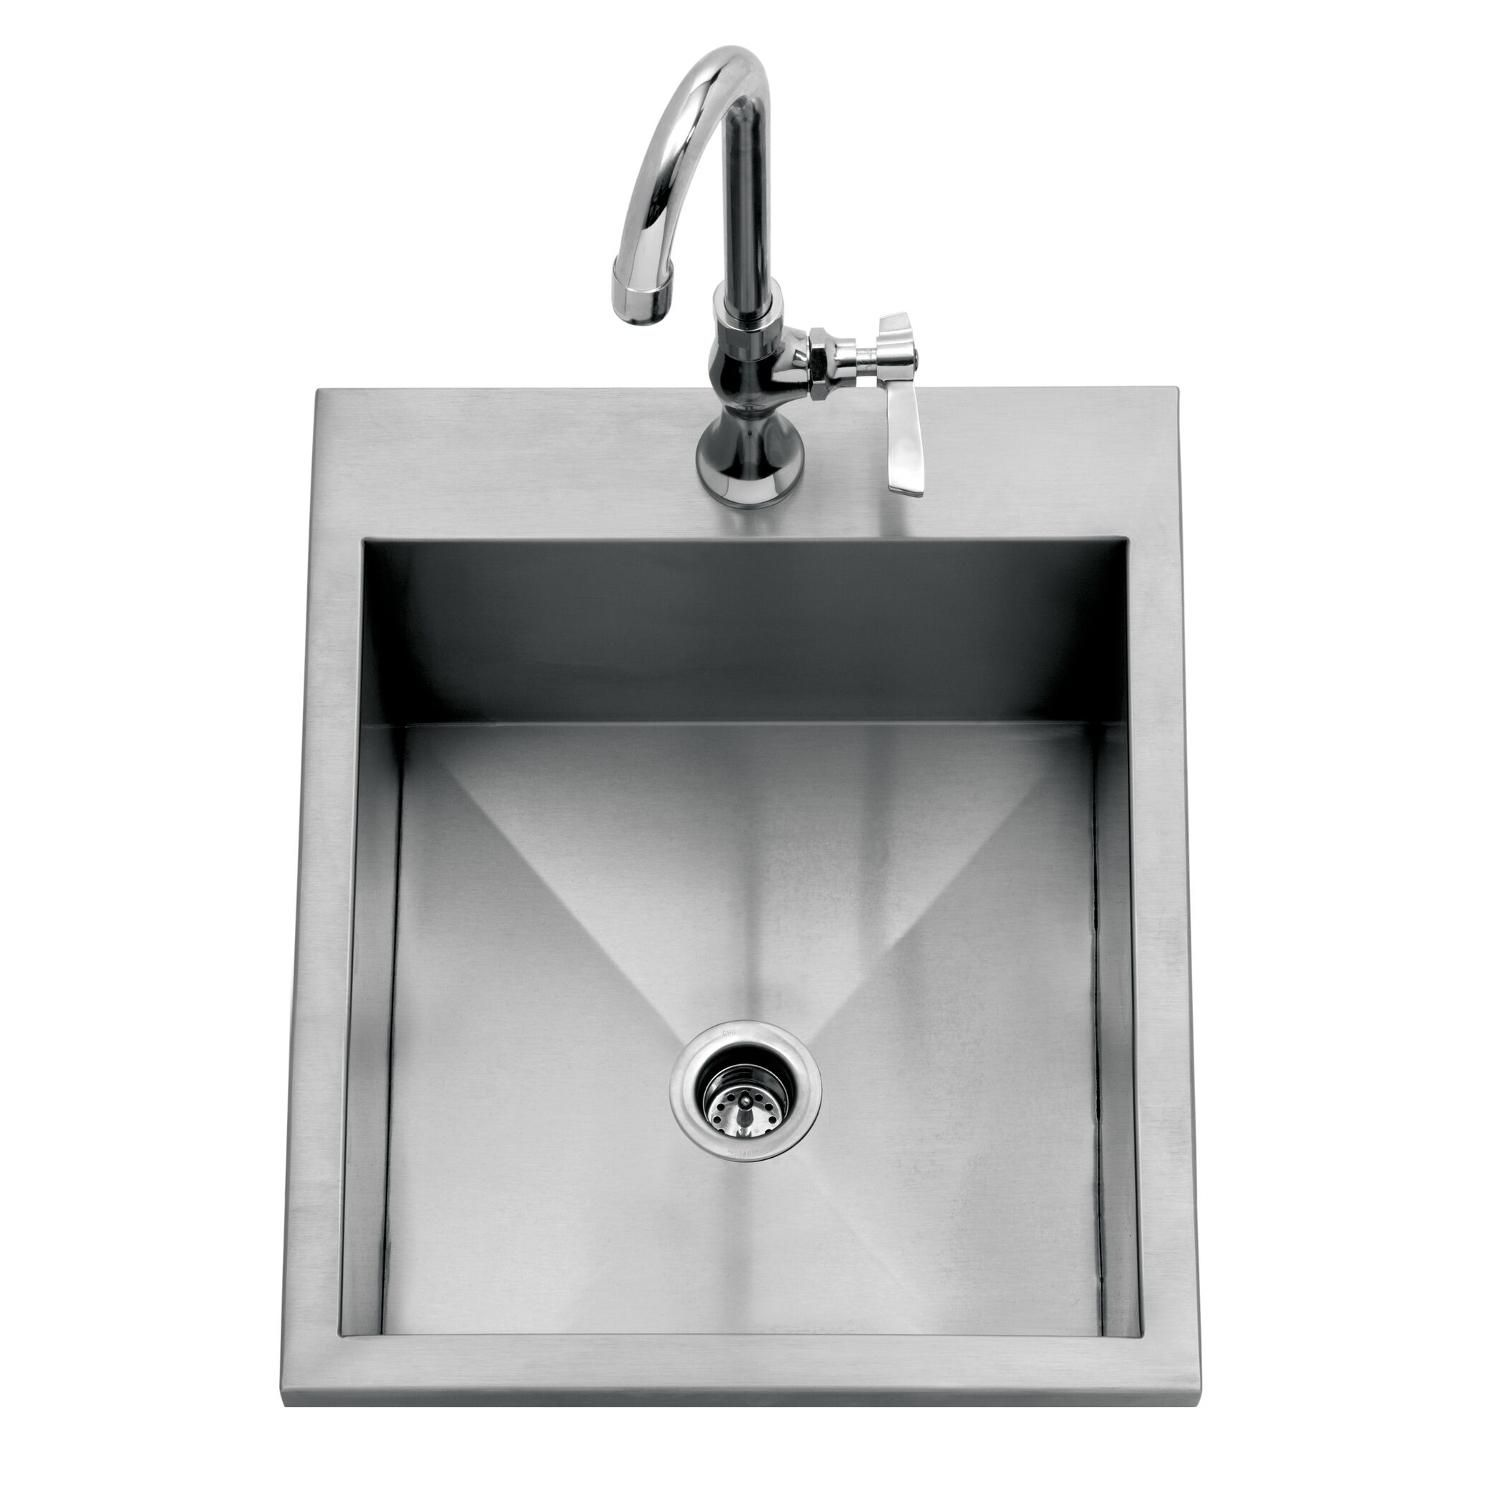 Delta Heat 15 Inch Drop In Outdoor Rated Bar Sink With Cold Water Faucet Dhos15 Outdoor Sinks Sink Bar Sink